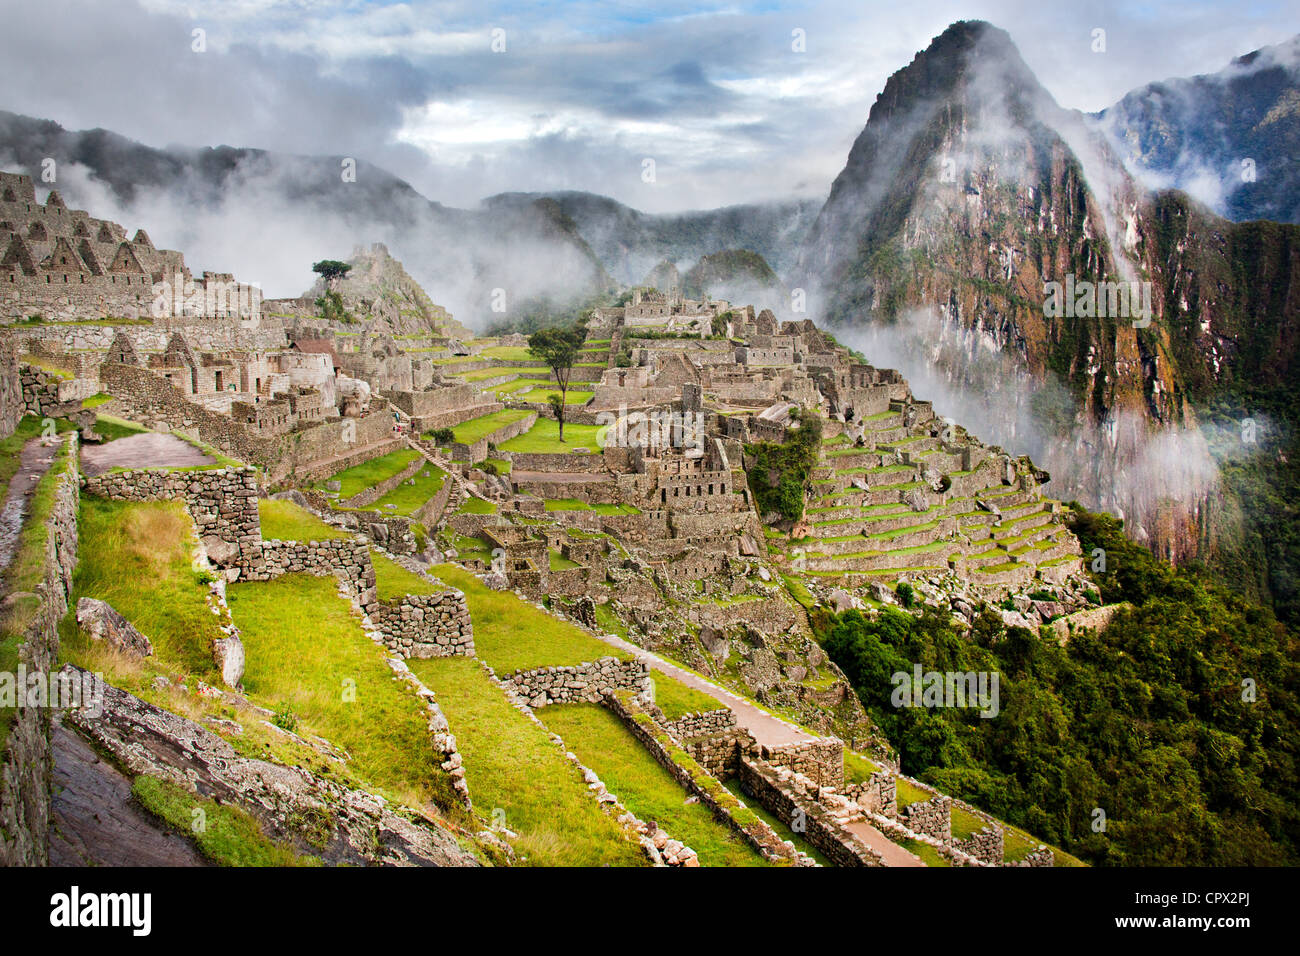 Machu picchu, peru, south america - Stock Image